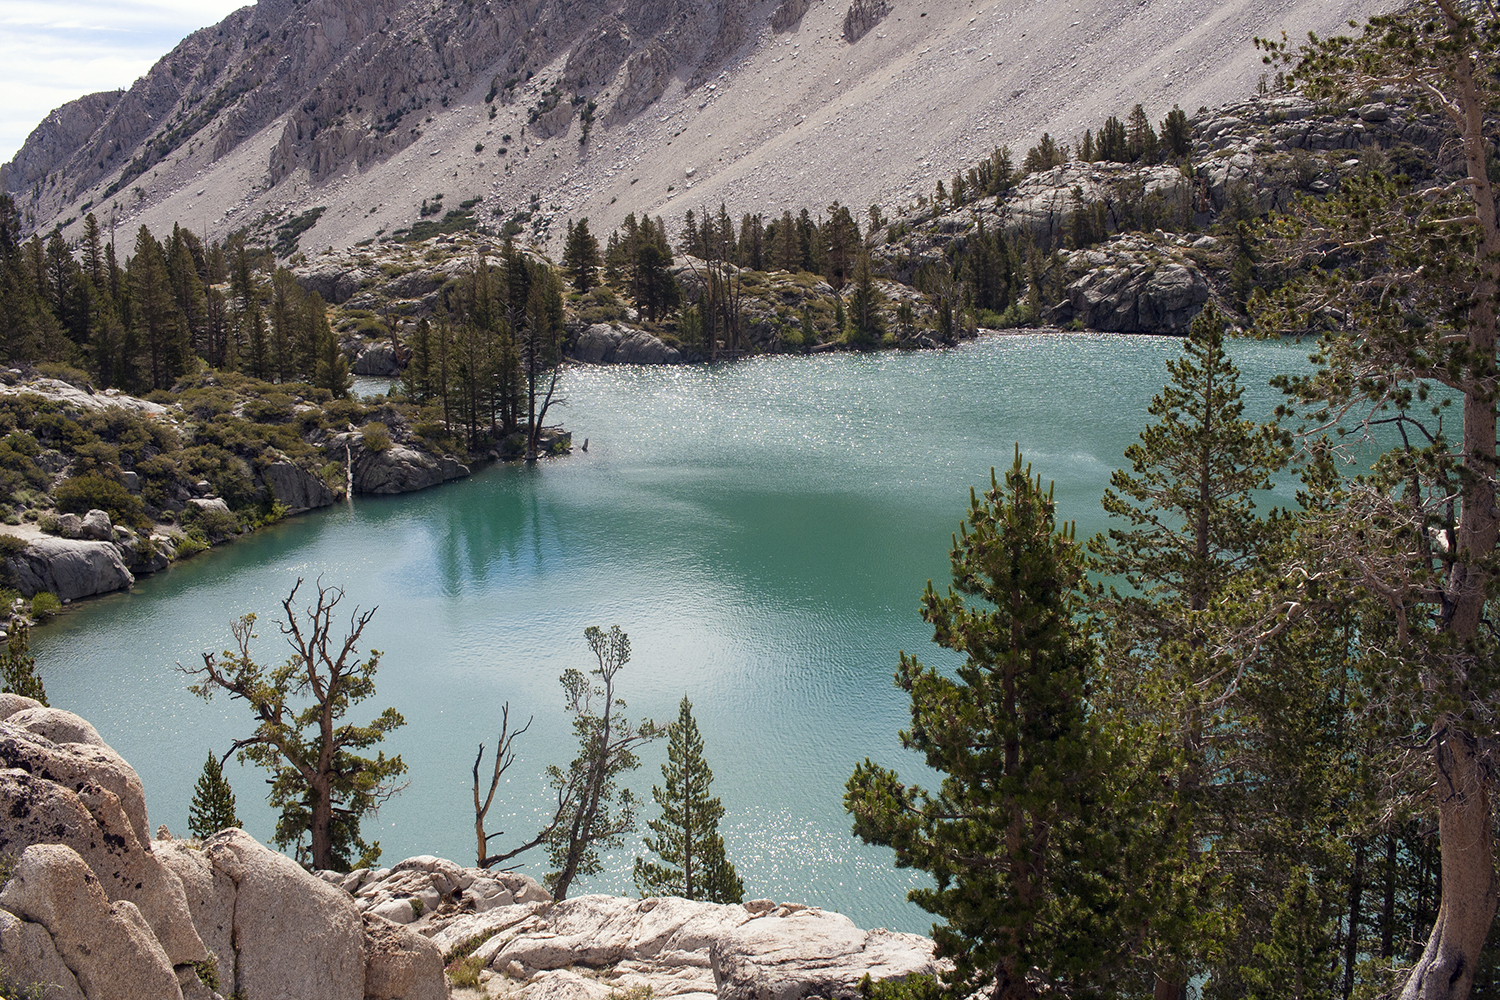 Big Pine Creek, Inyo National Forest, John Muir Wilderness, Big Pine North Fork Trail, Mountains, Hiking, First Lake